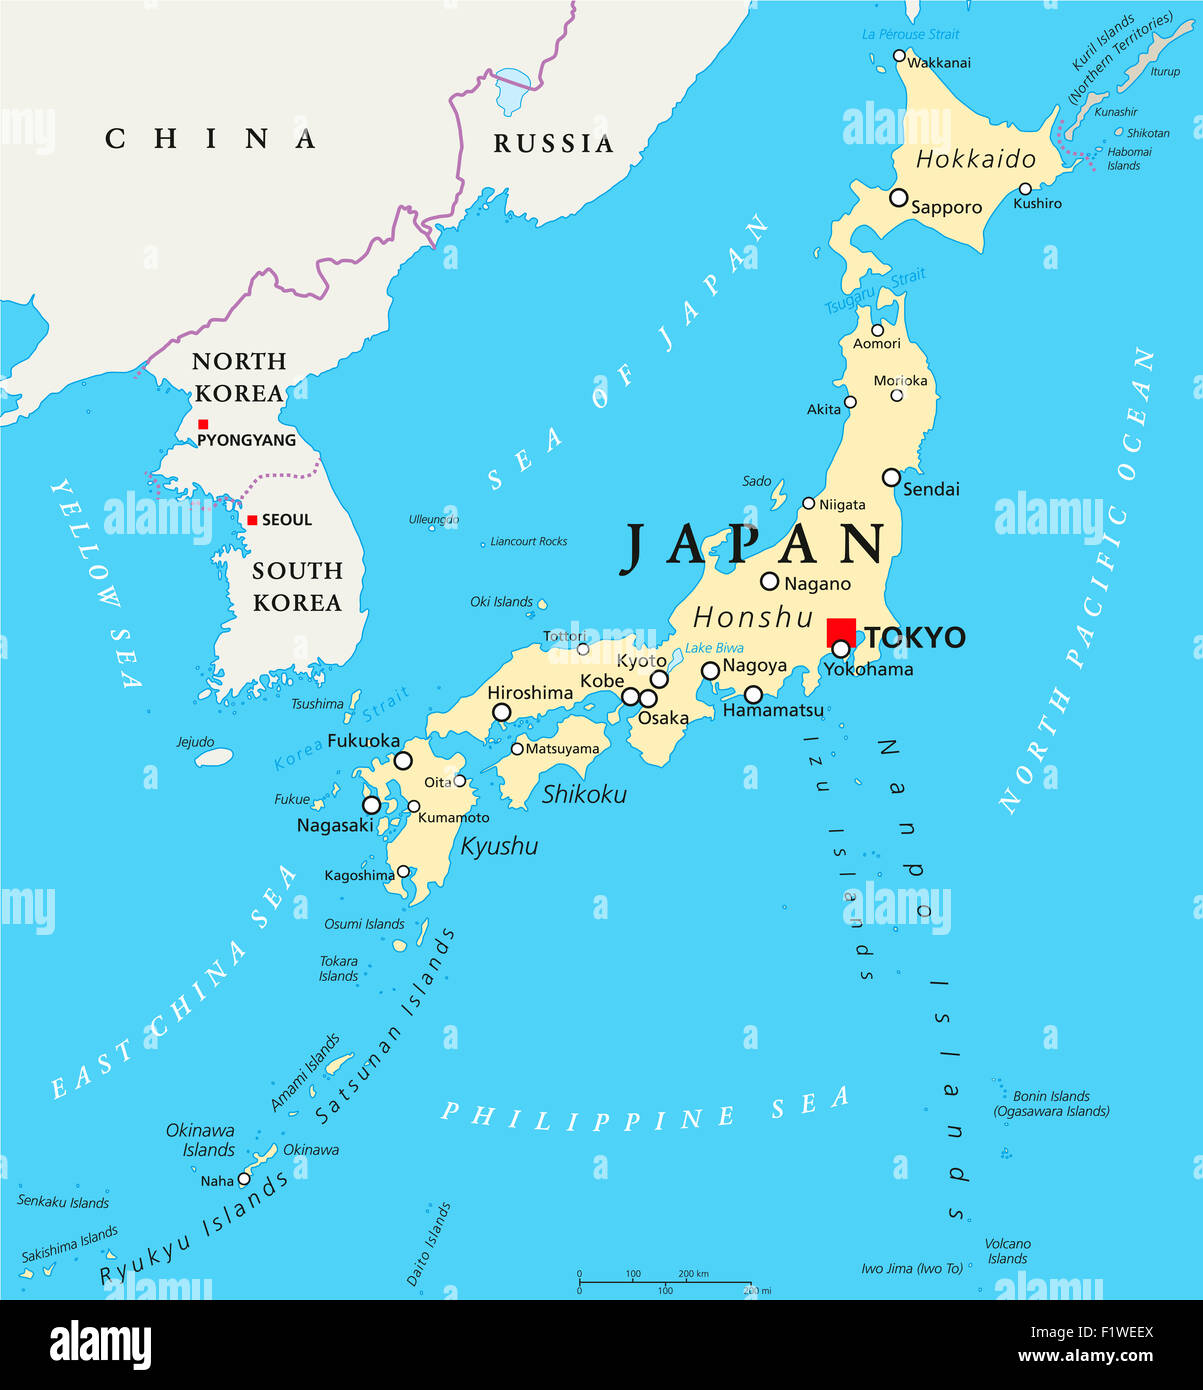 Japan Political Map With Capital Tokyo National Borders And Stock Photo